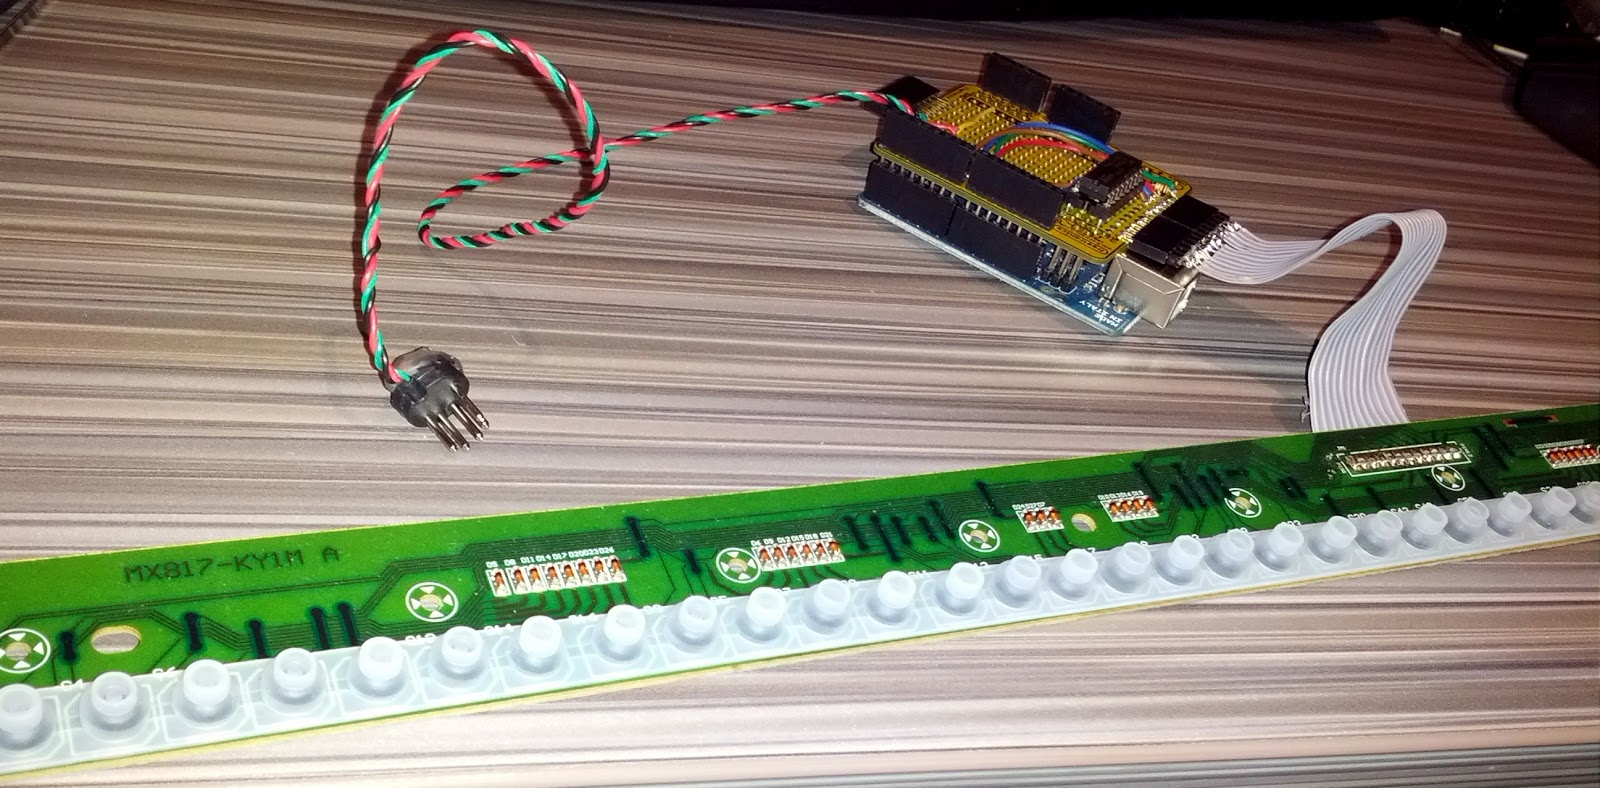 Code Tinker Hack How To Turn Piano Toy Into Midi Keyboard Using Circuit Bending Making Music By Rewiring Devices And Toys After Assembling All Main Components Below Is The Working Necessary Implement A